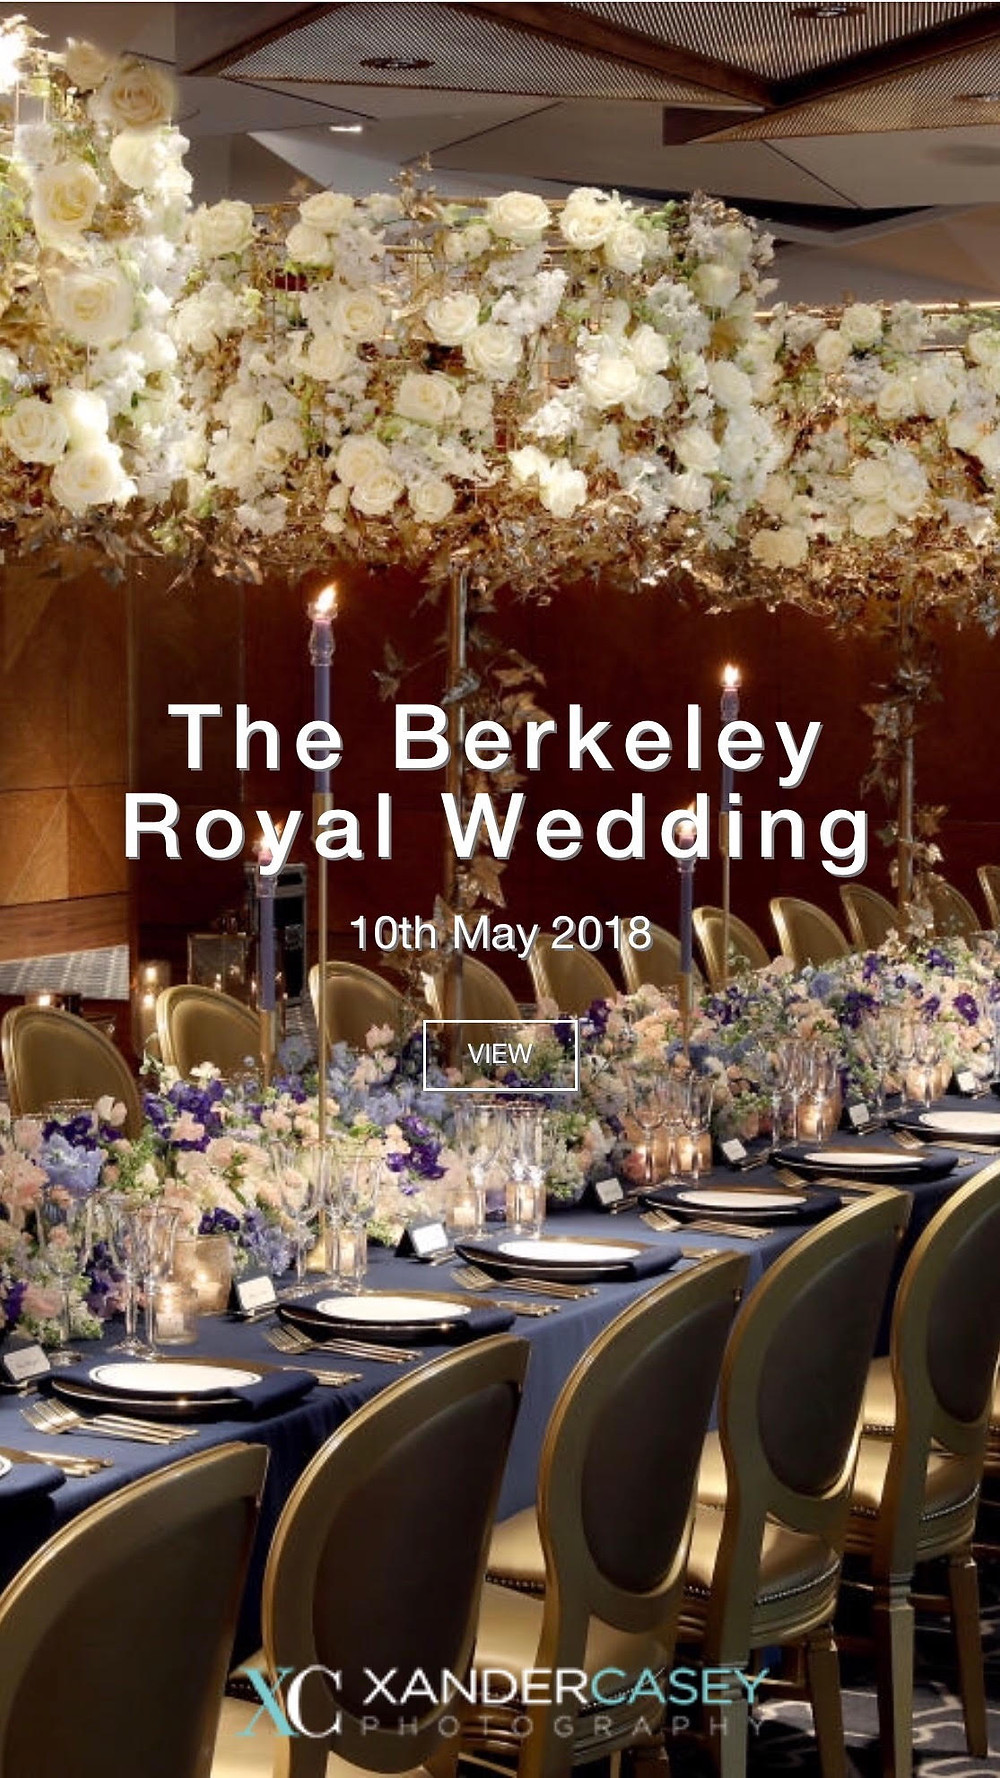 The Berkeley Royal Wedding